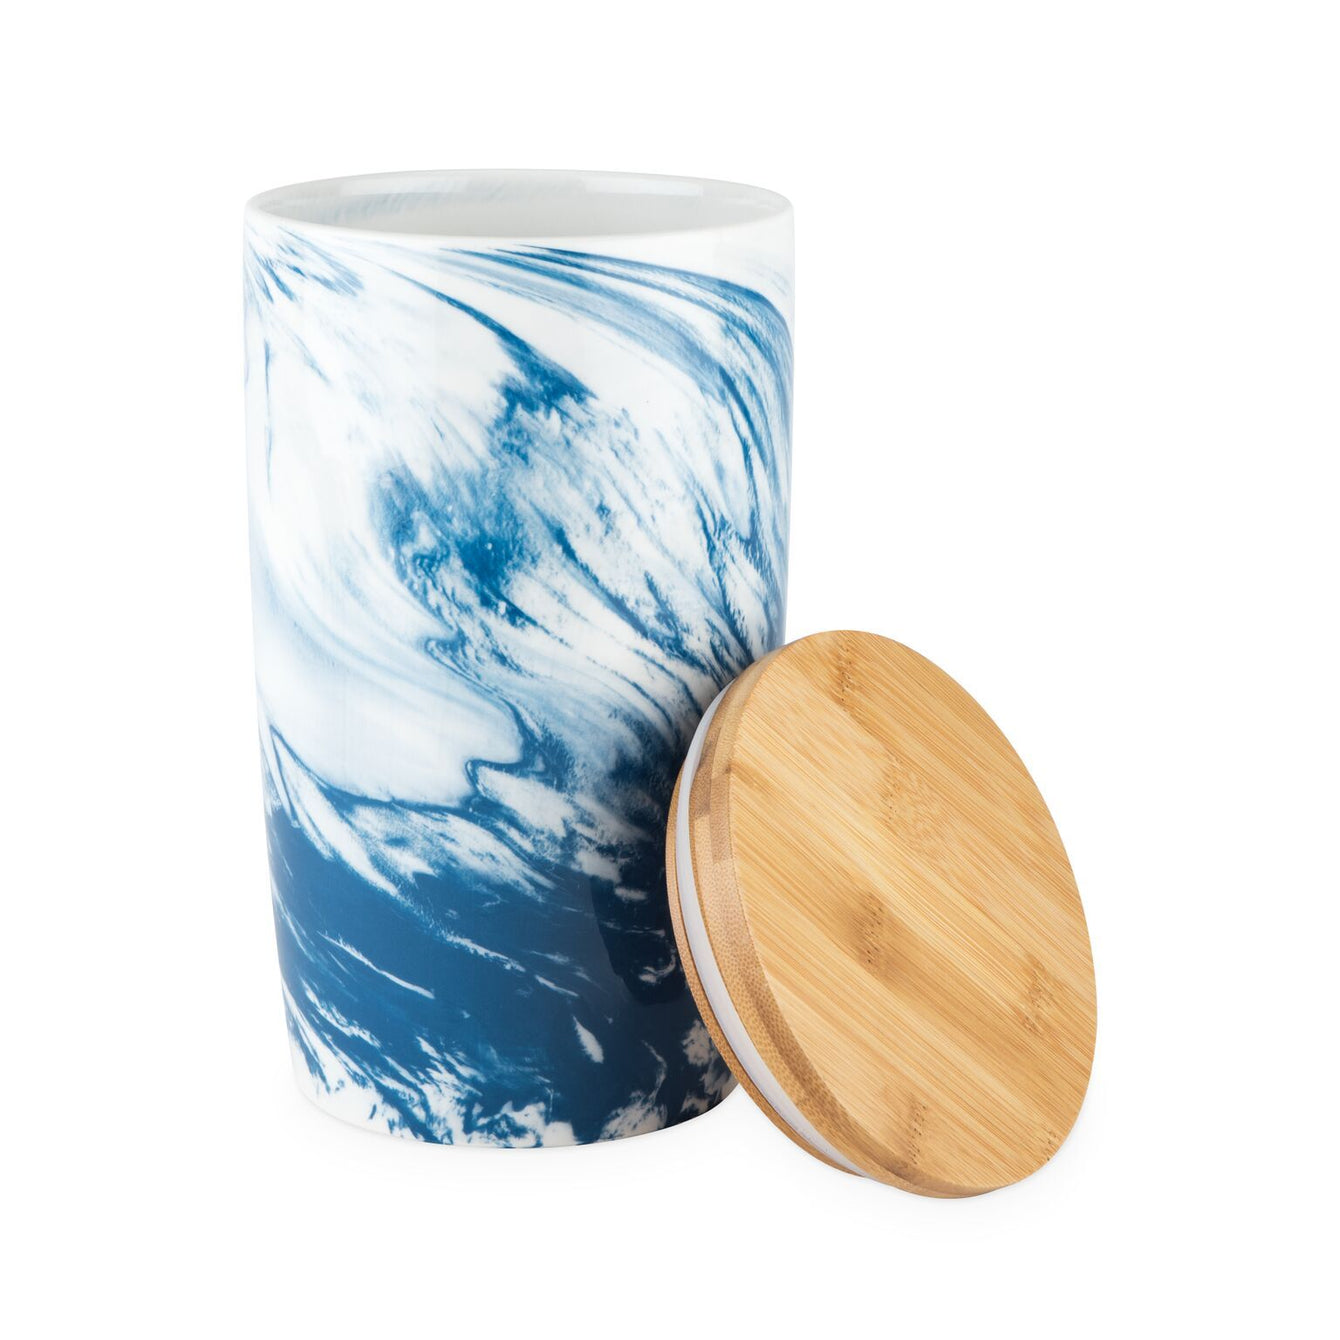 Pantry Medium Marbled Ceramic Canister-Home - Kitchen + Bathroom - Canisters + Jars-TWINE-Peccadilly